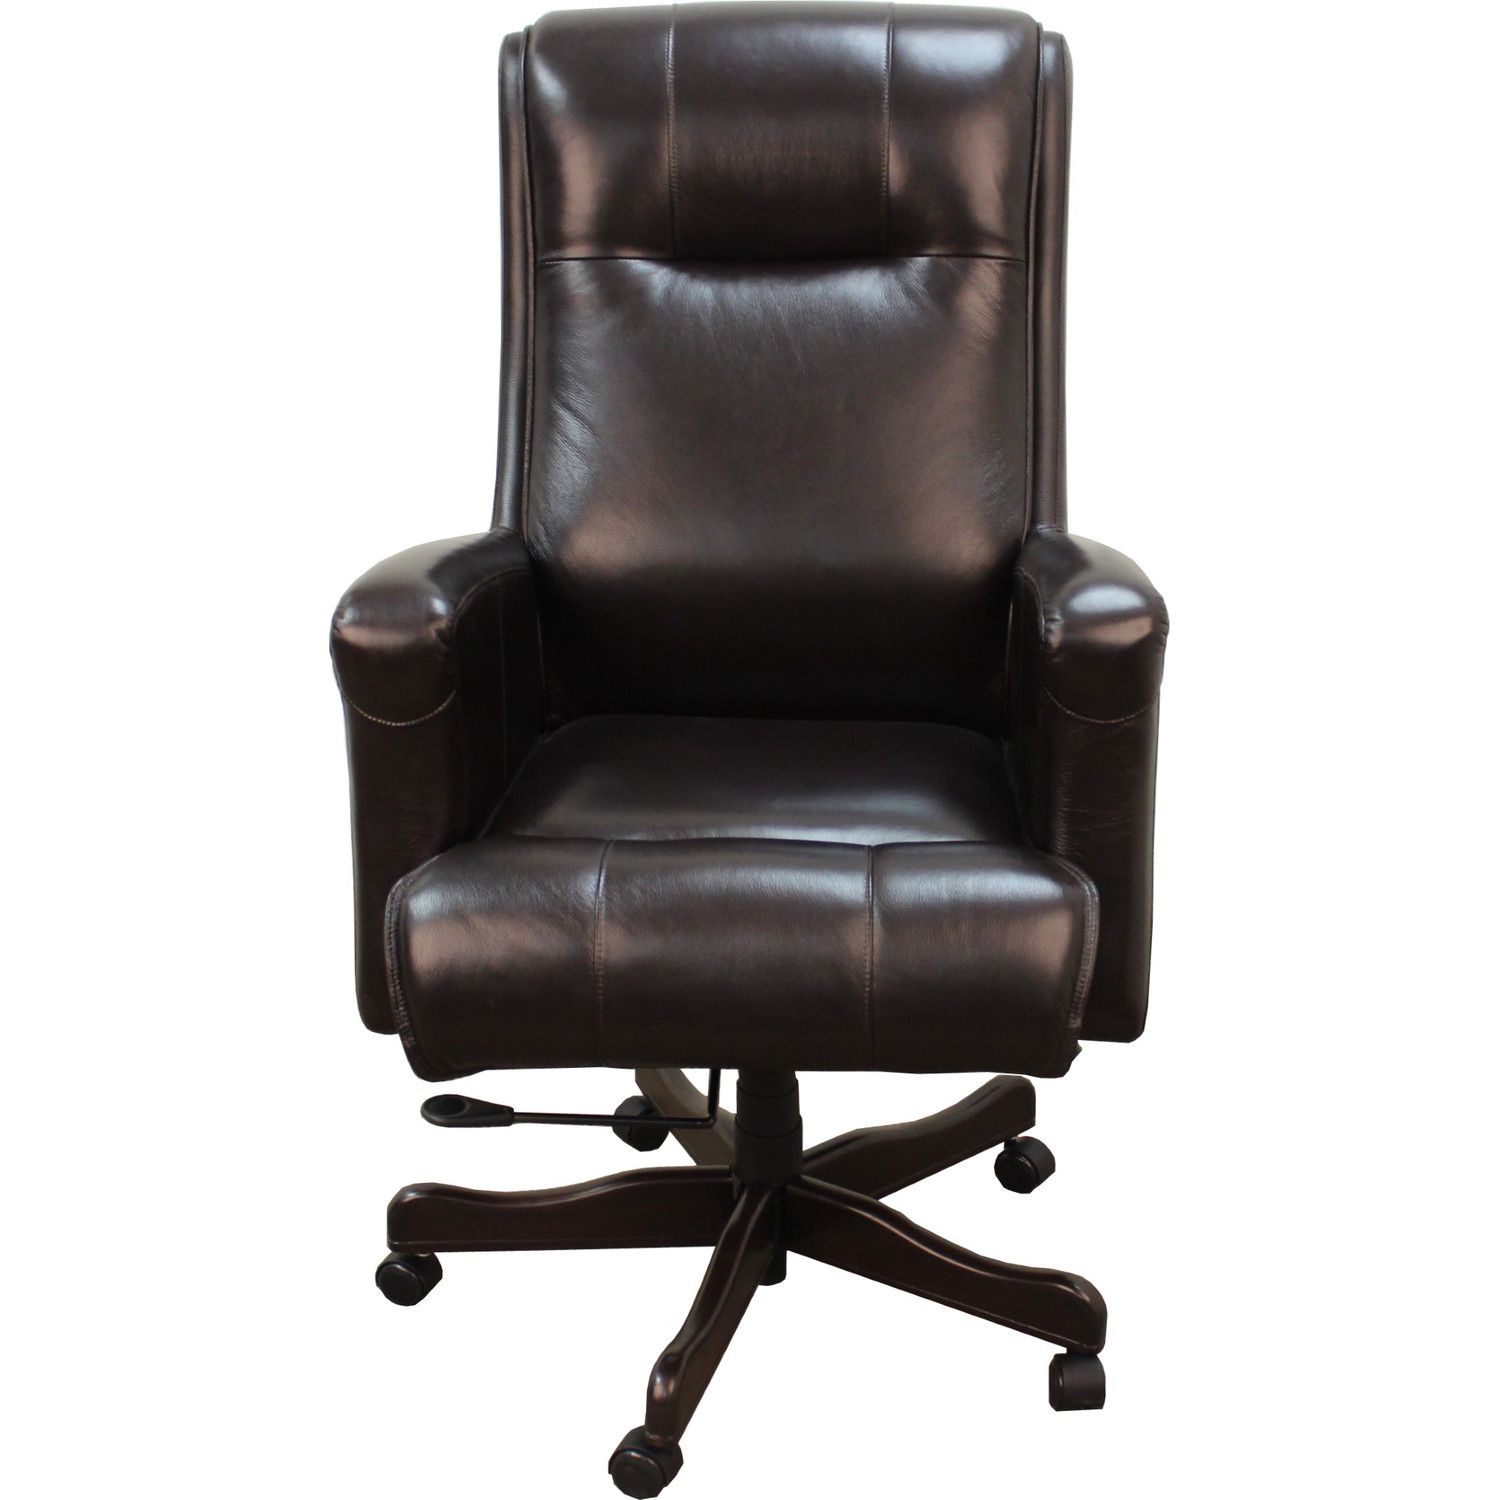 Lsu Leather Office Chair